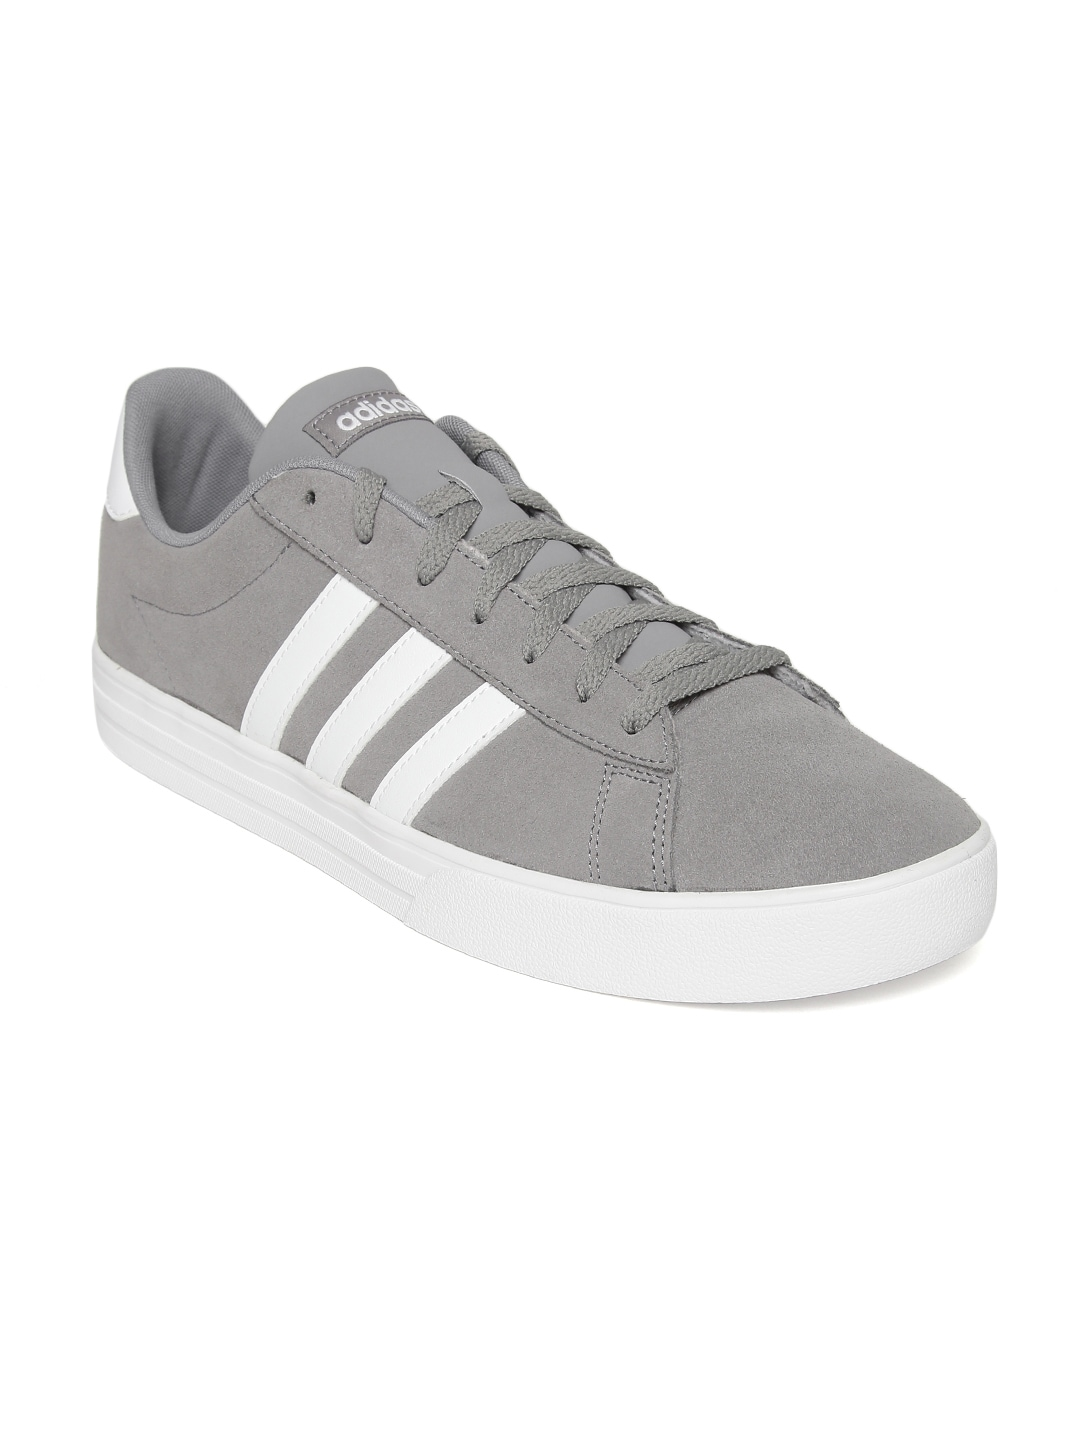 adidas Daily 2.0 rose white, 39.5